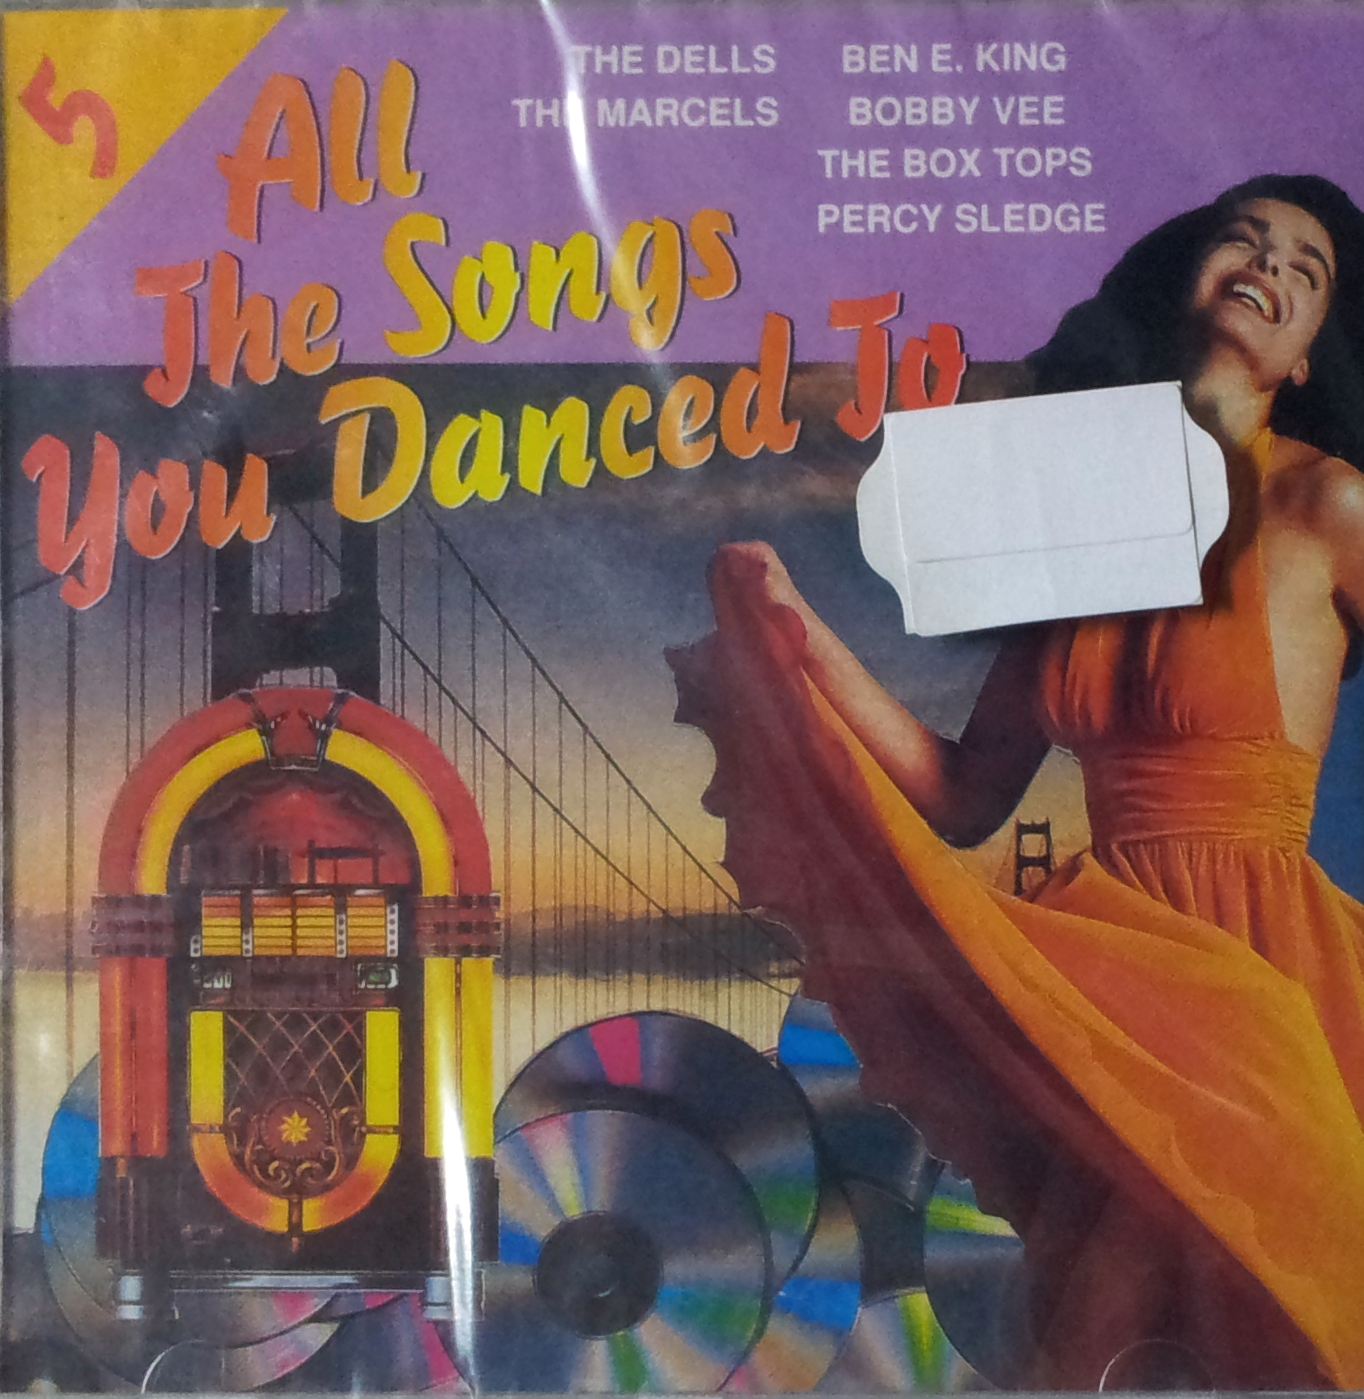 All the songs you danced to Vol. 5